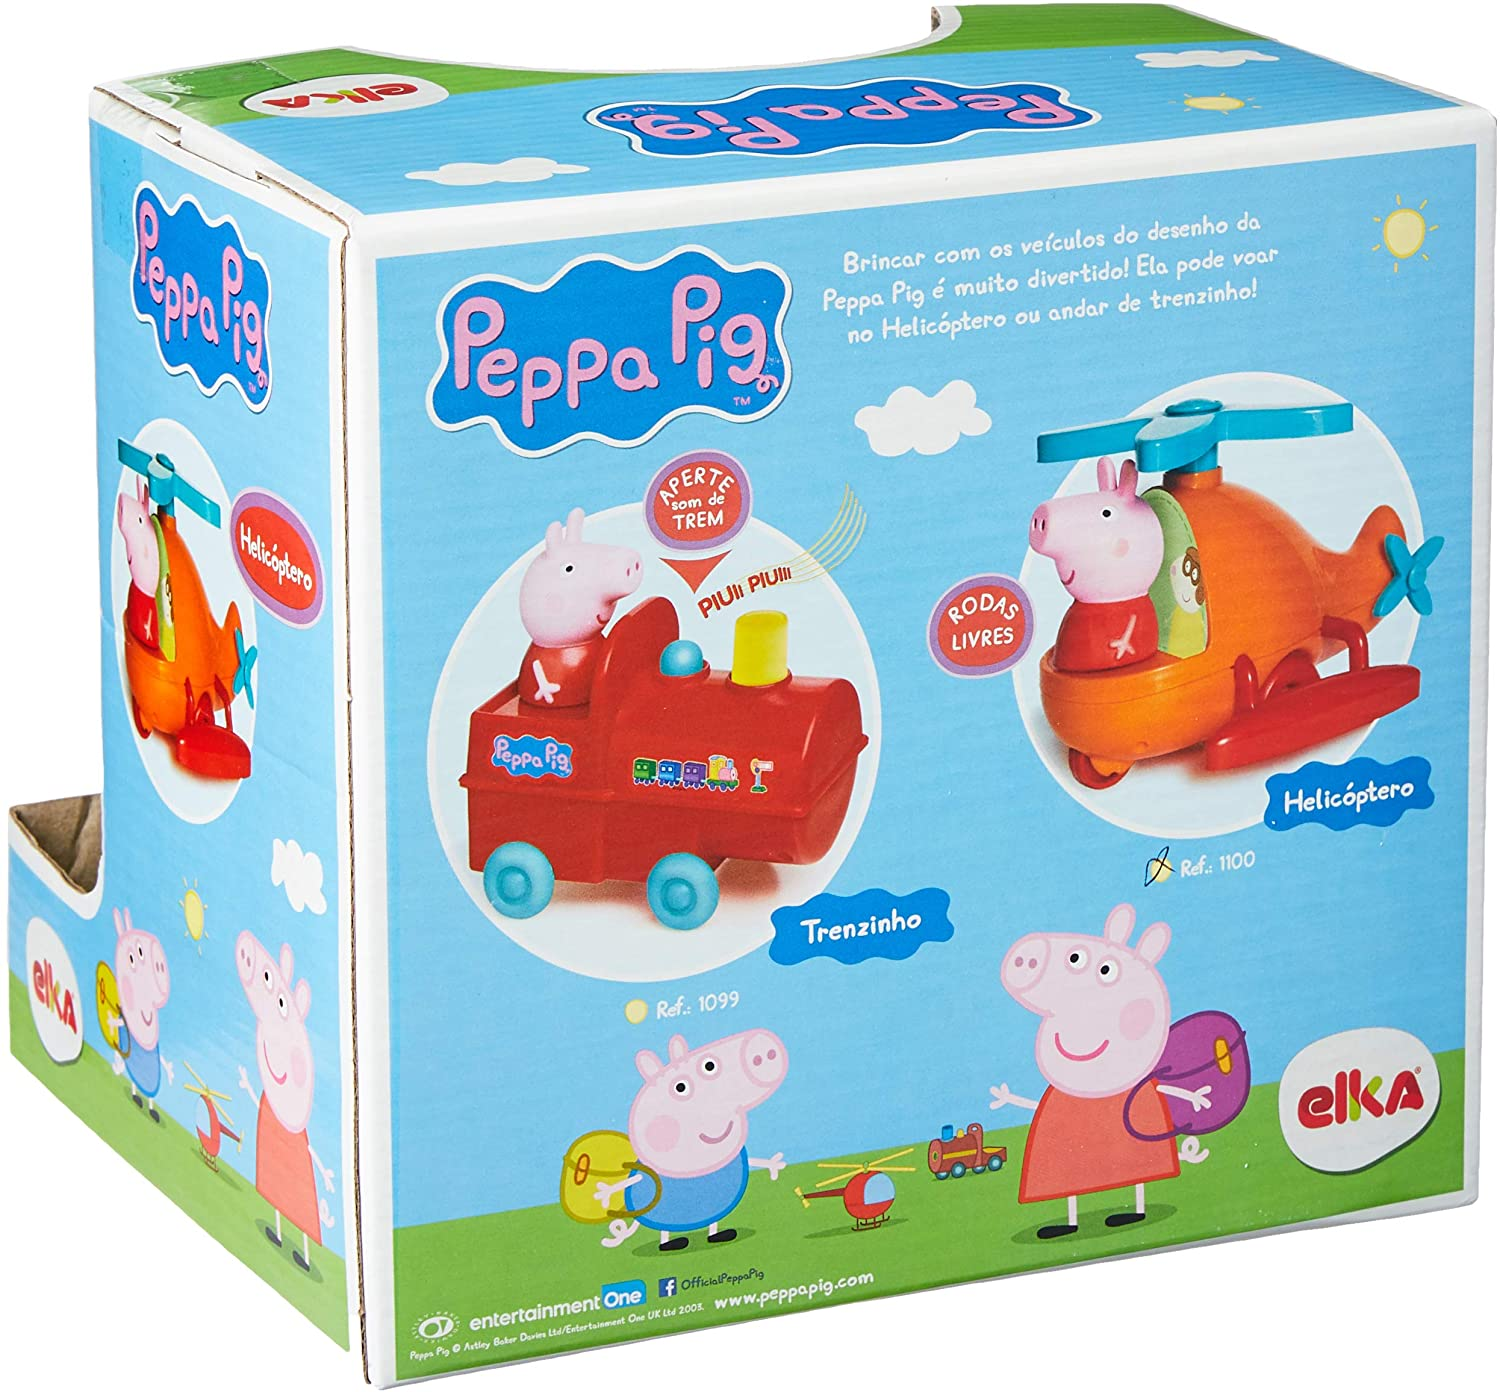 Peppa Pig Helicoptero